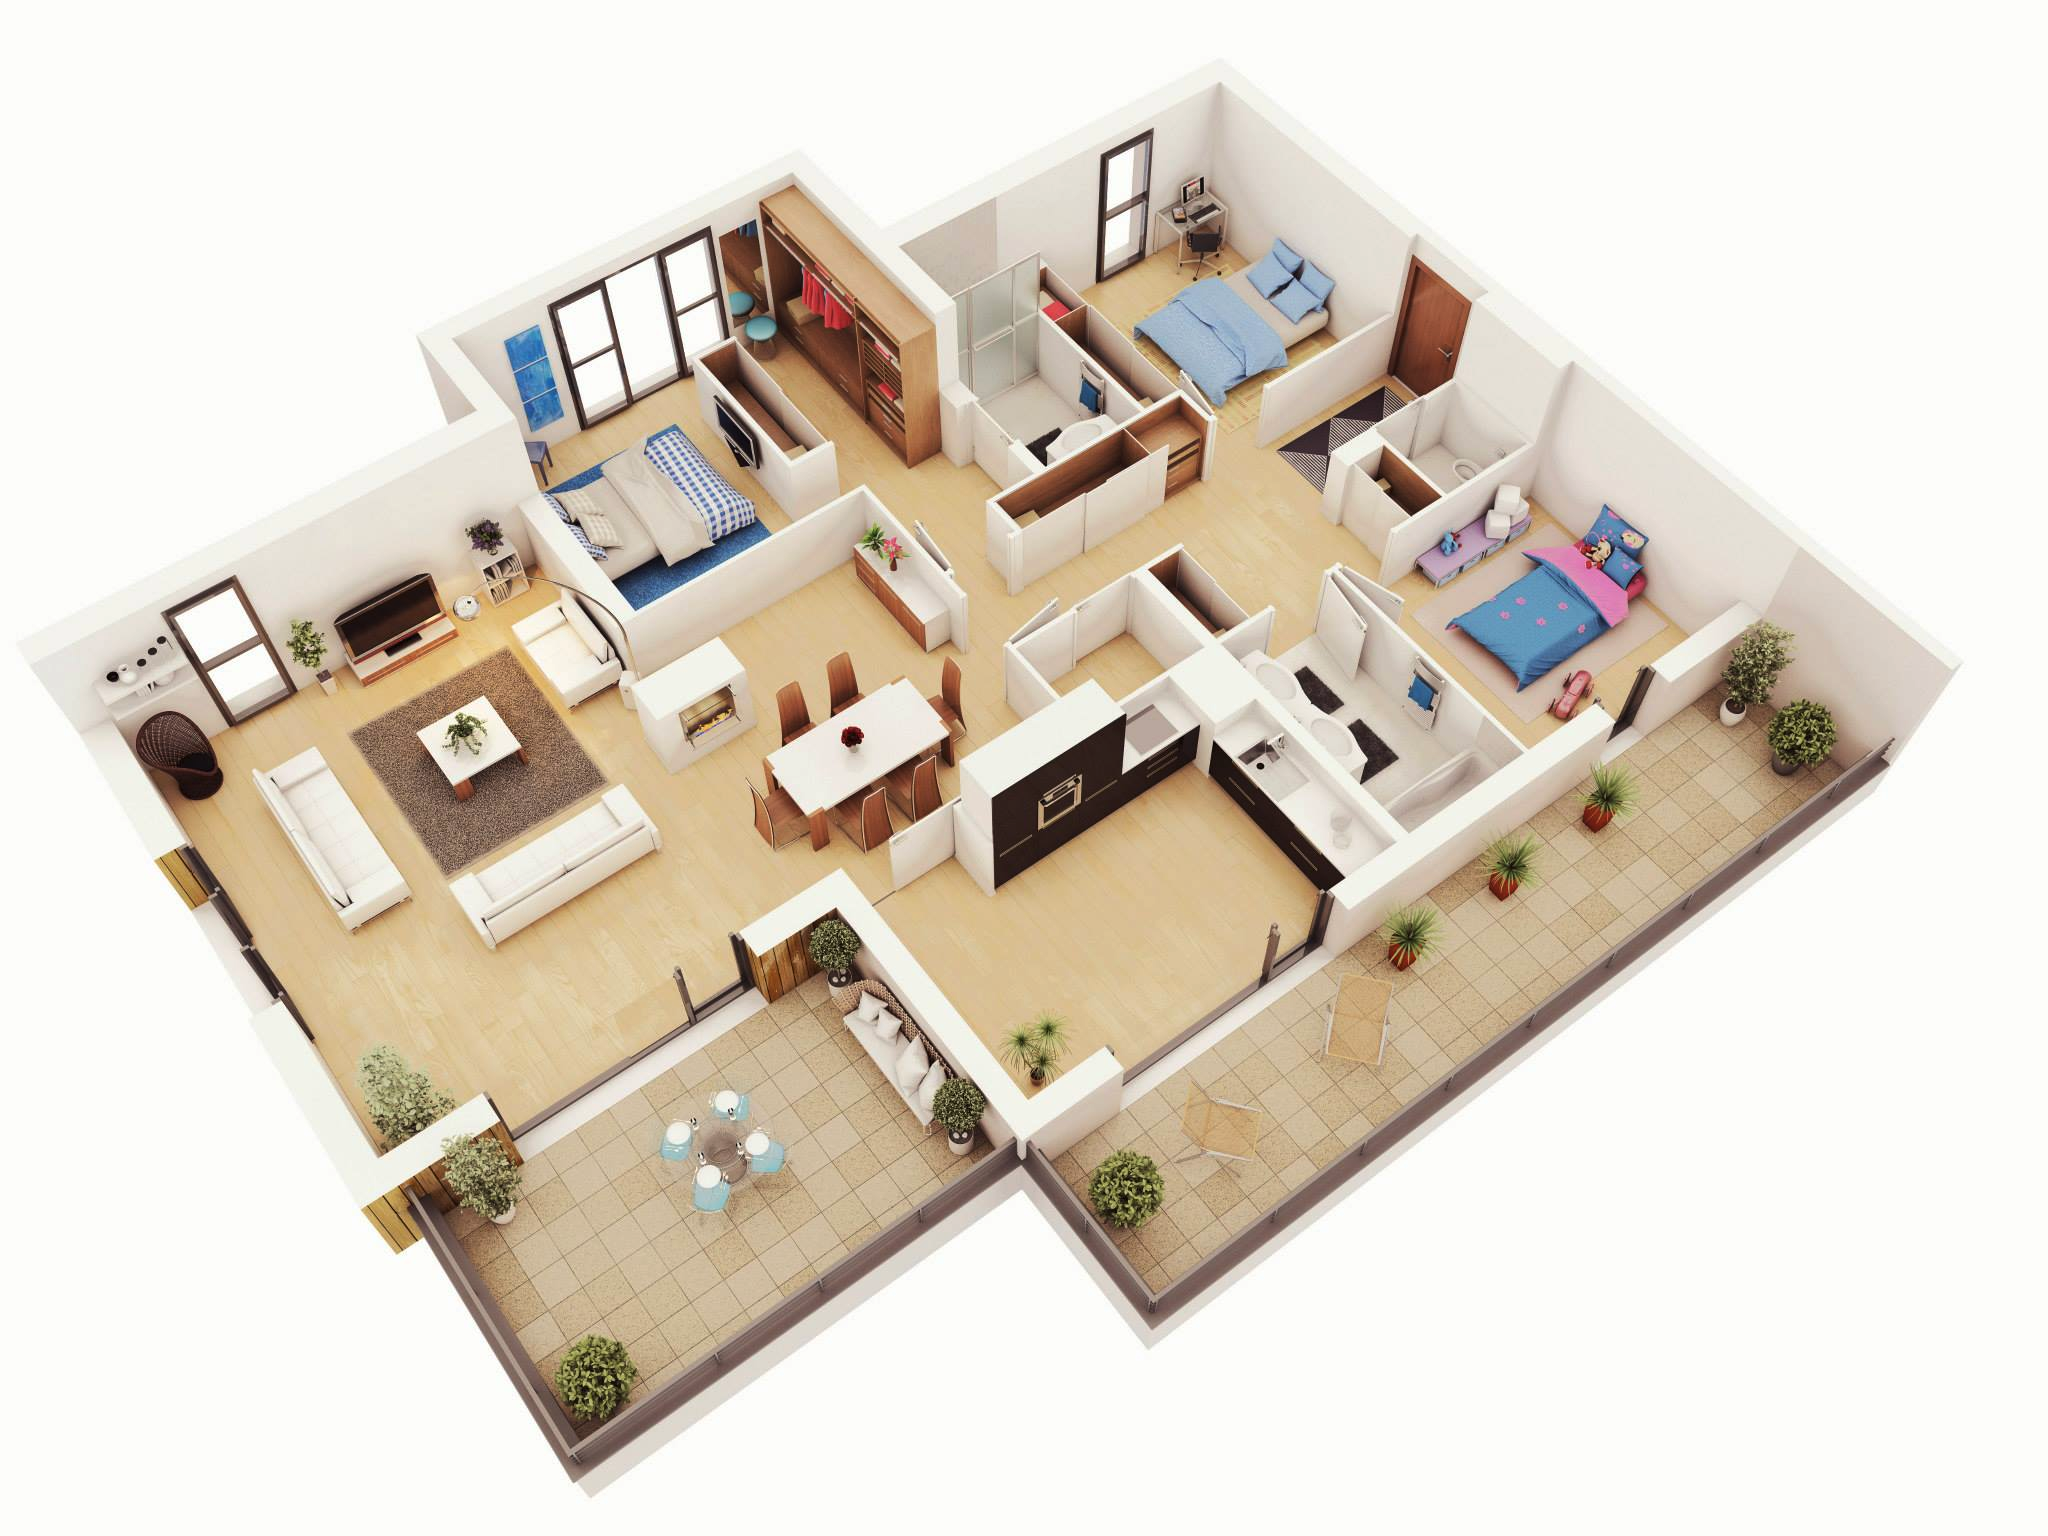 25 more 3 bedroom 3d floor plans Ground floor 3 bedroom plans